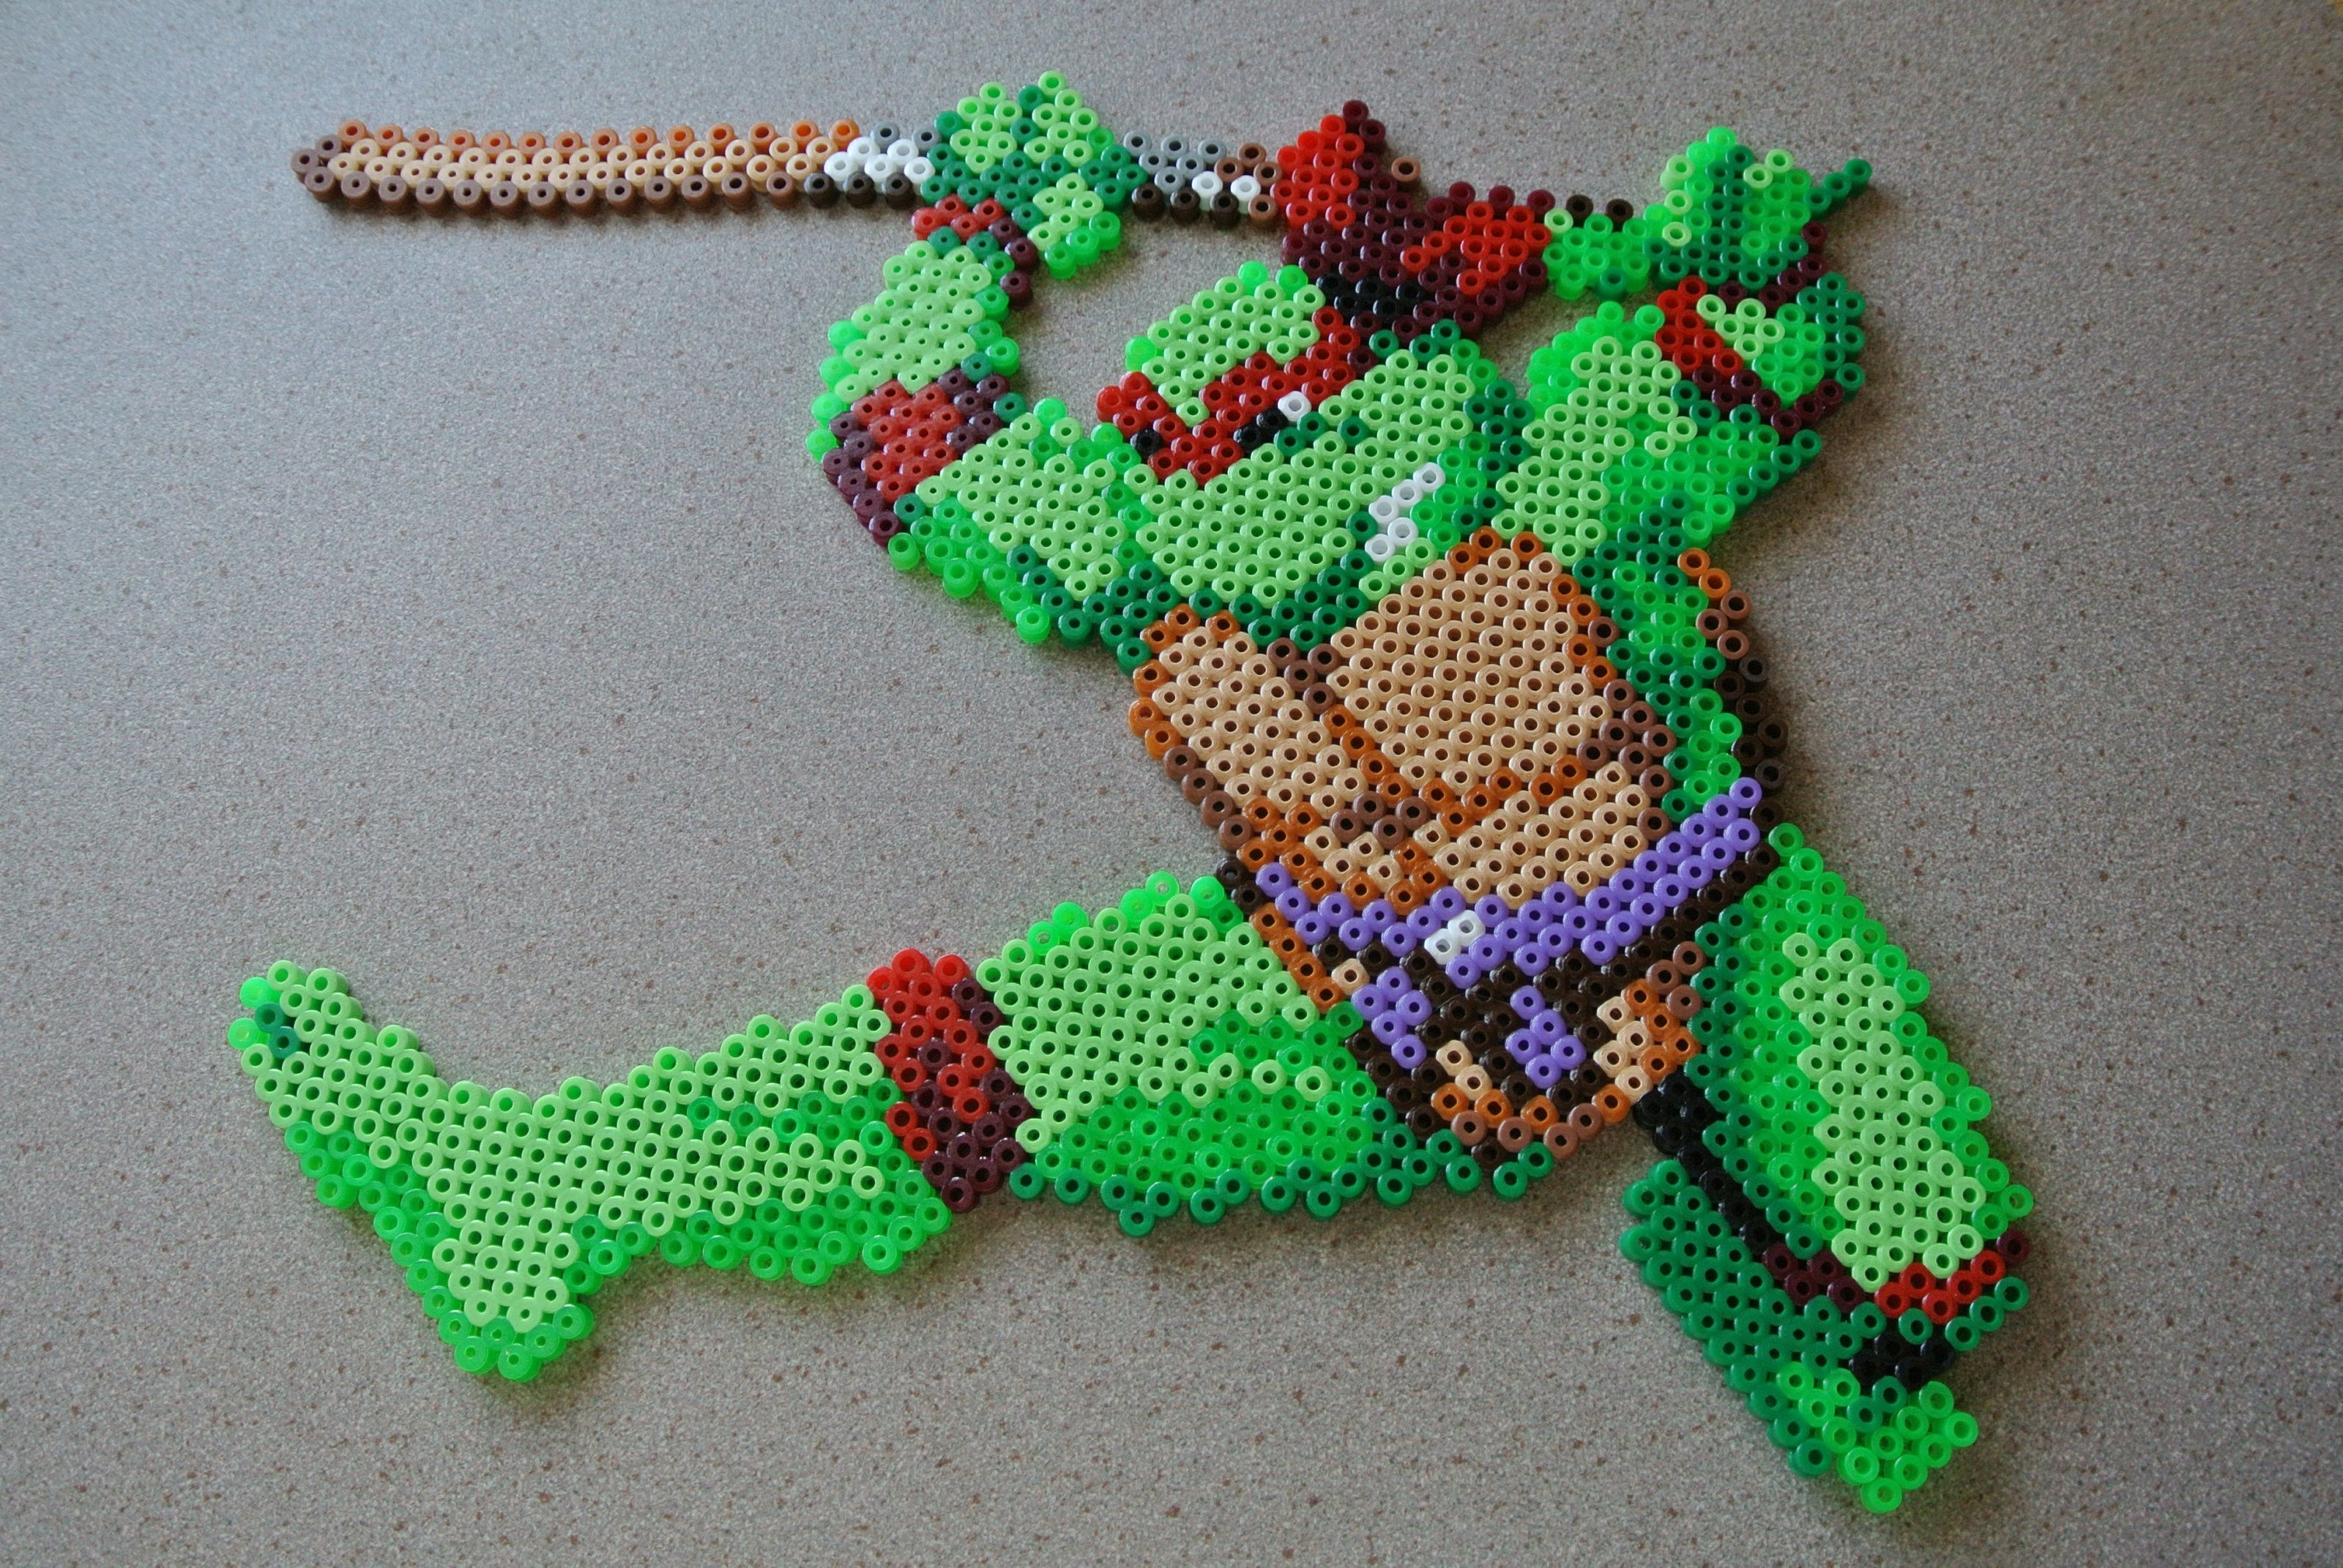 TMNT Hama perler beads by  taxie25